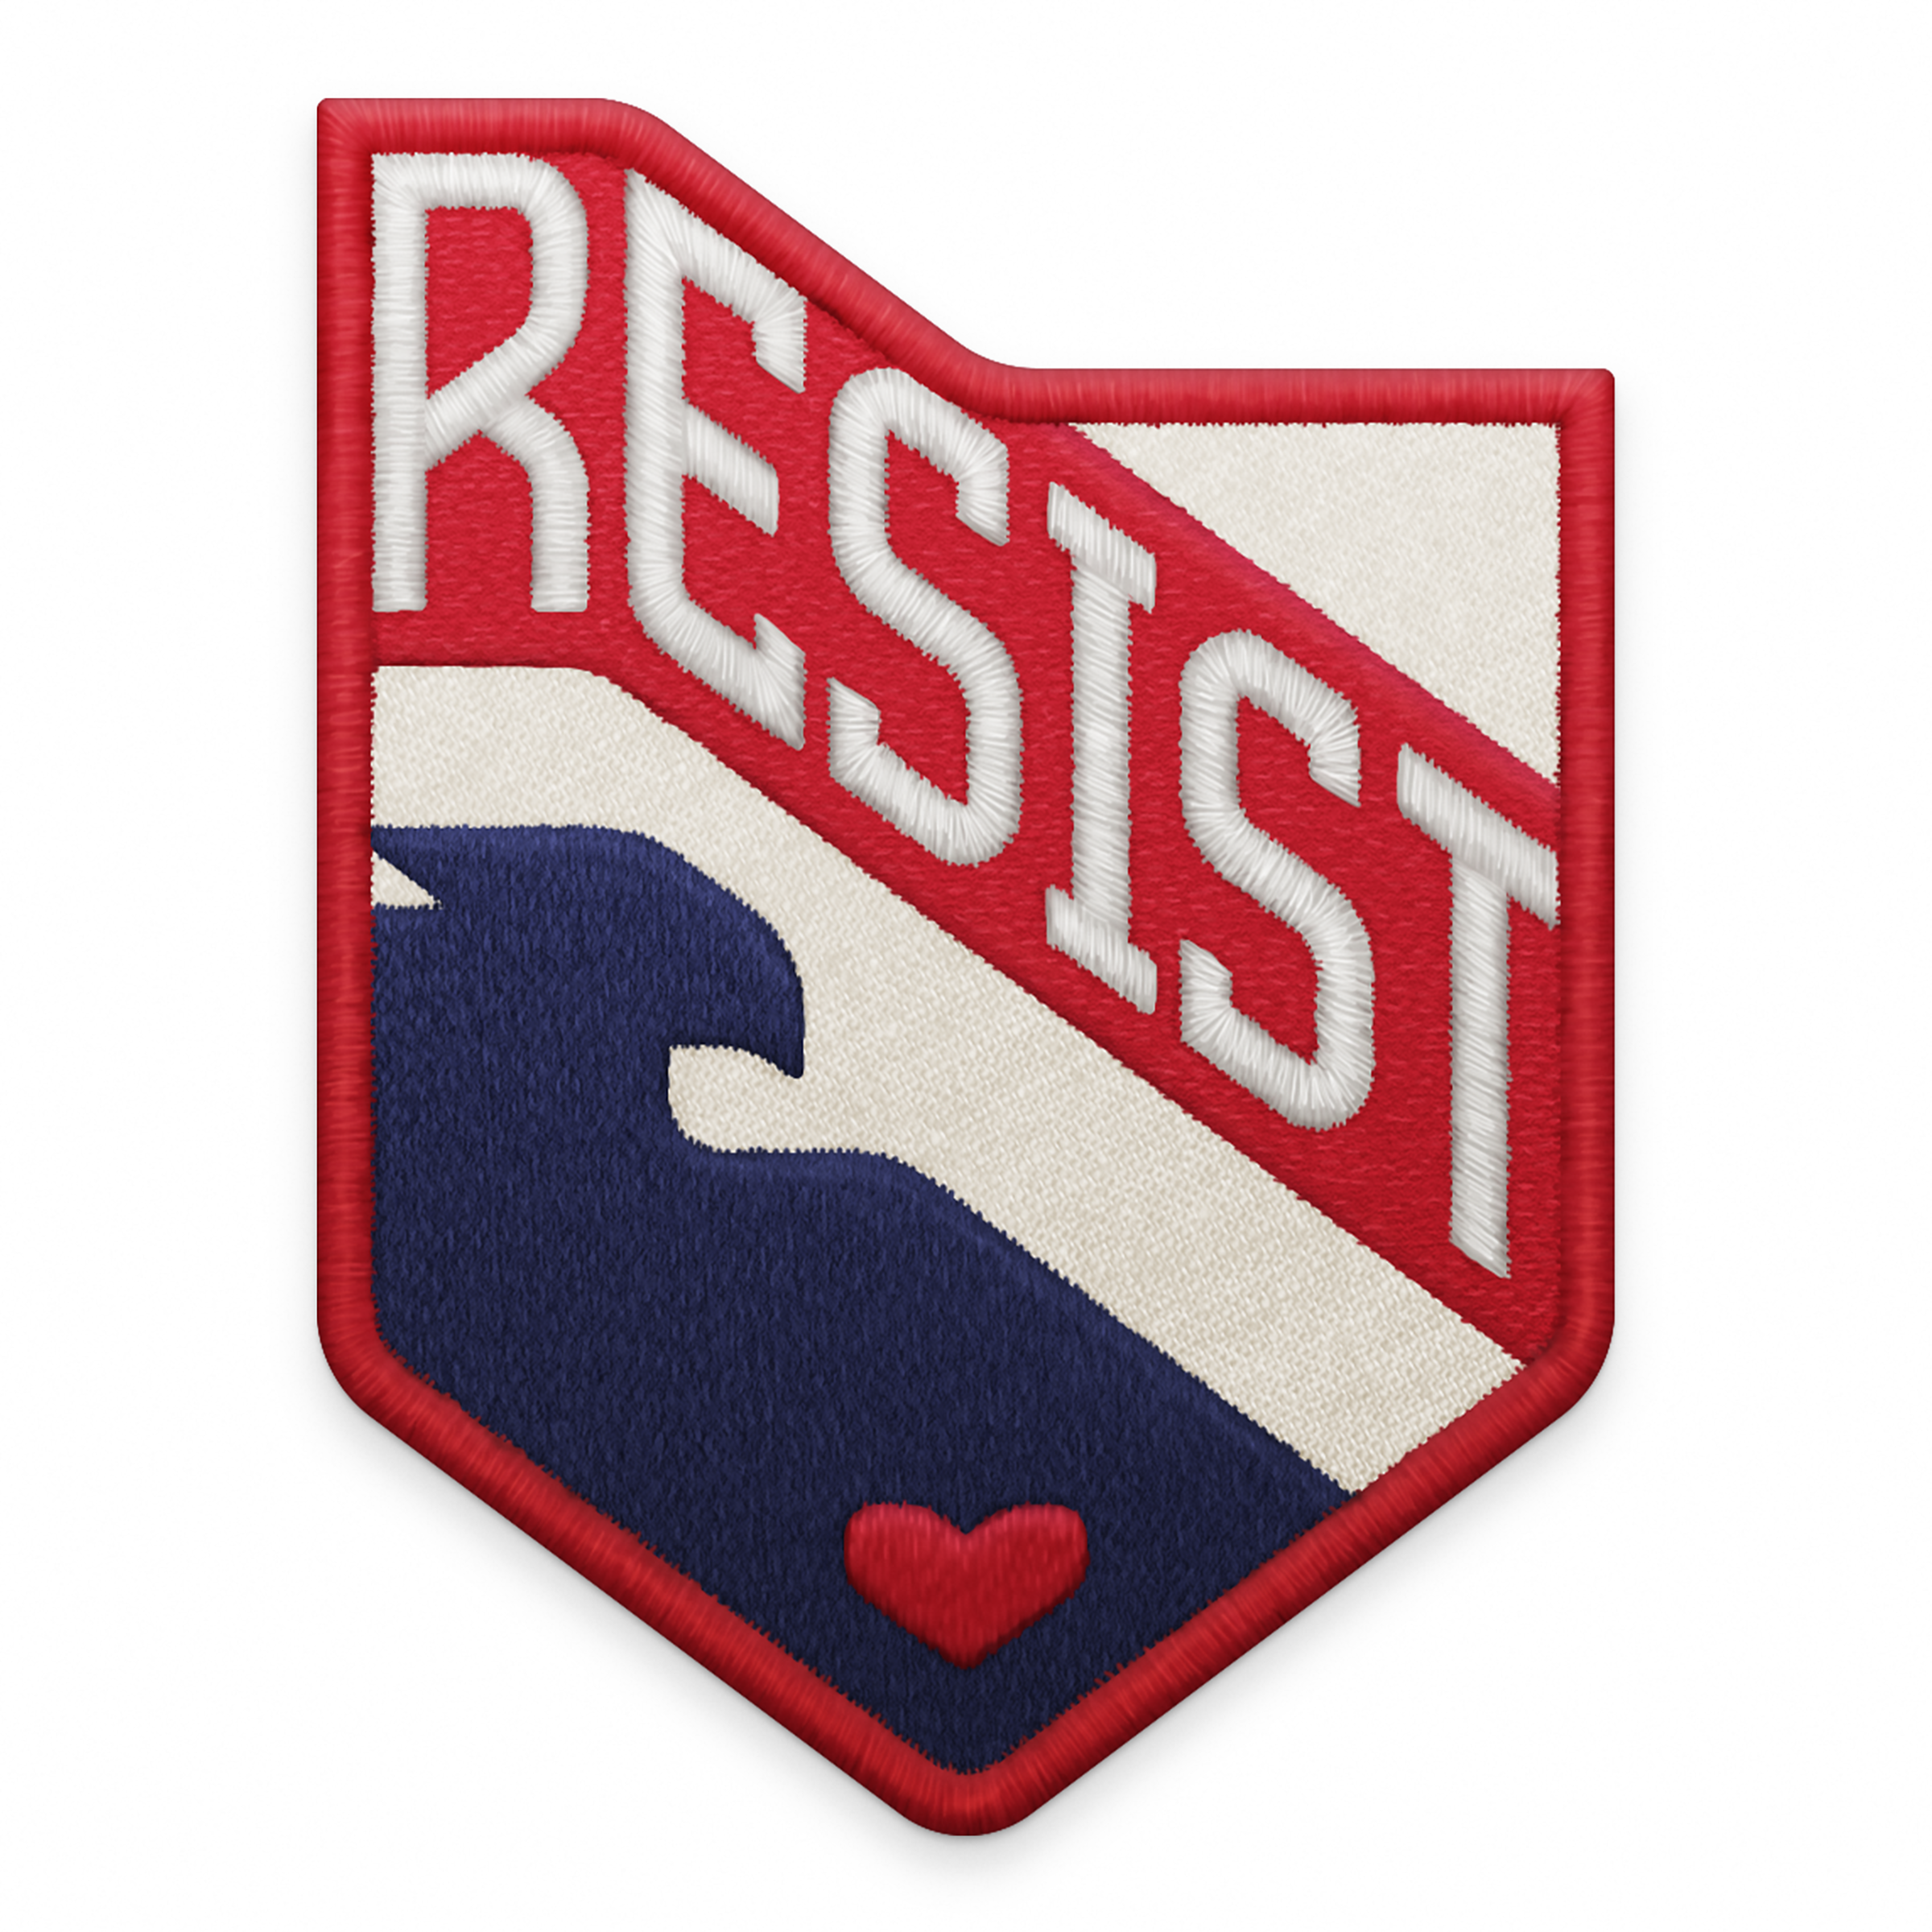 Resist Patch Resist patch